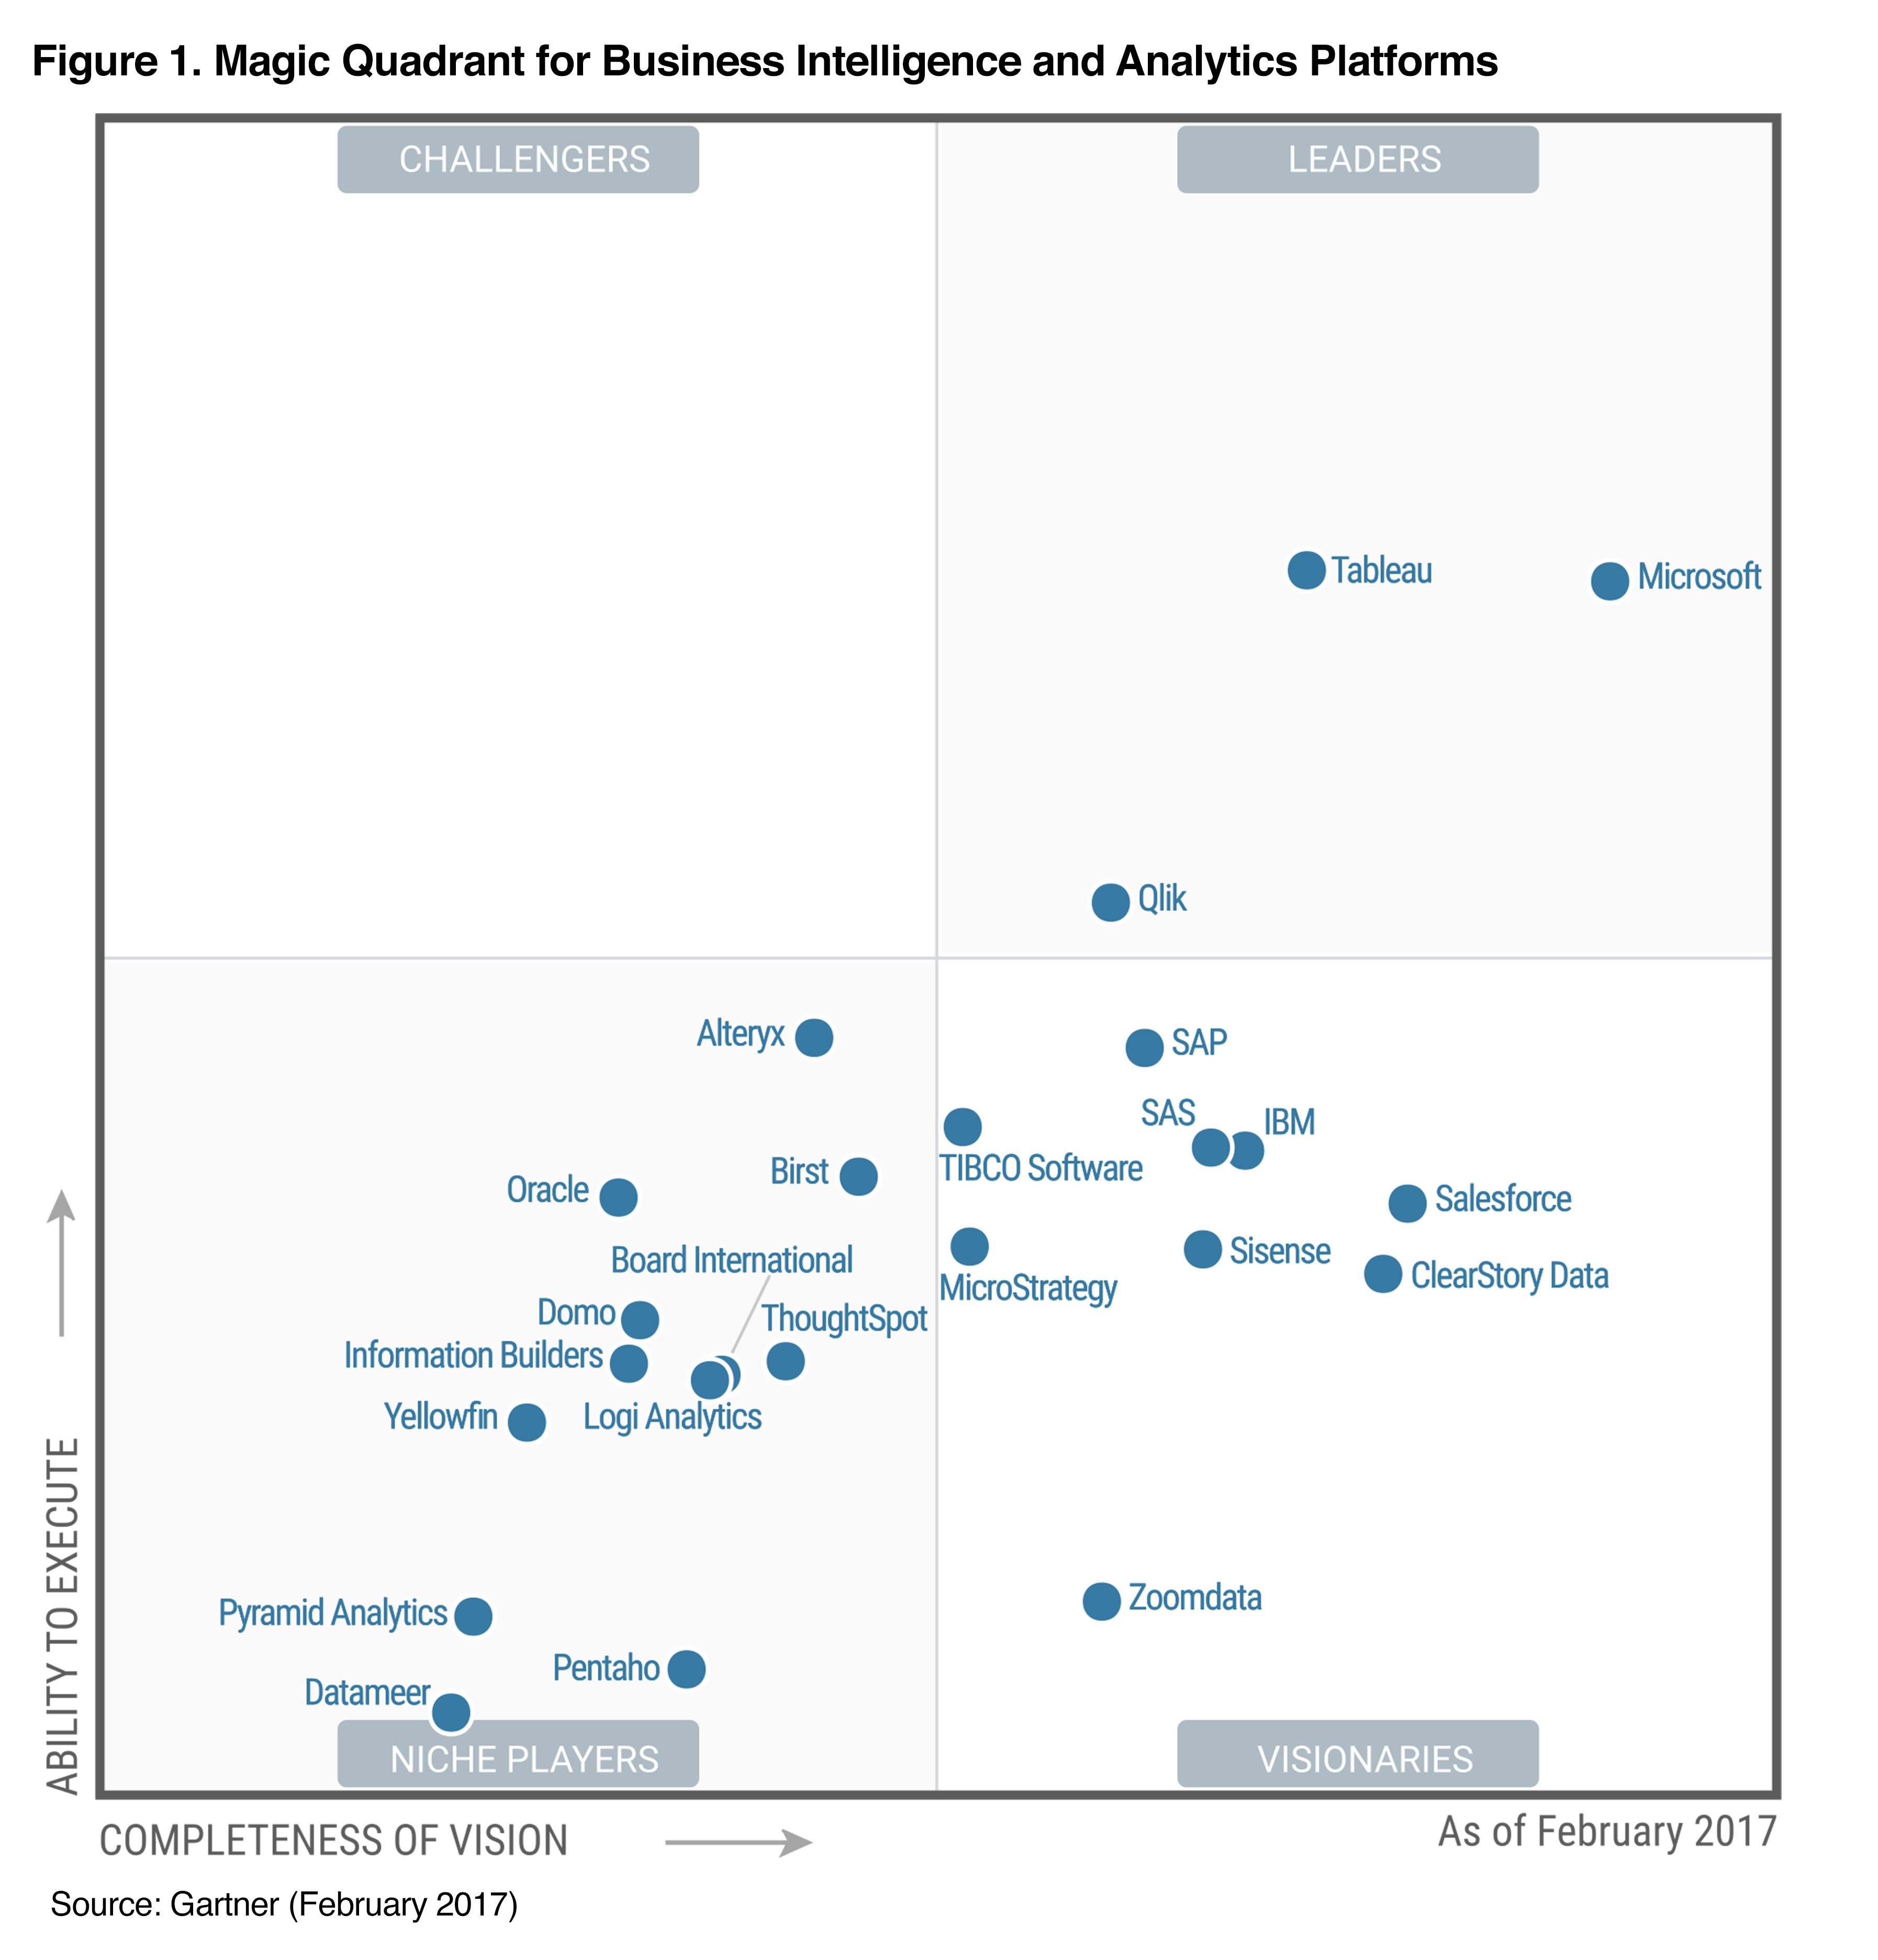 Tableau is a leader in the Gartner Magic Quadrant for Business Intelligence and Analytics Platforms for the fifth consecutive year